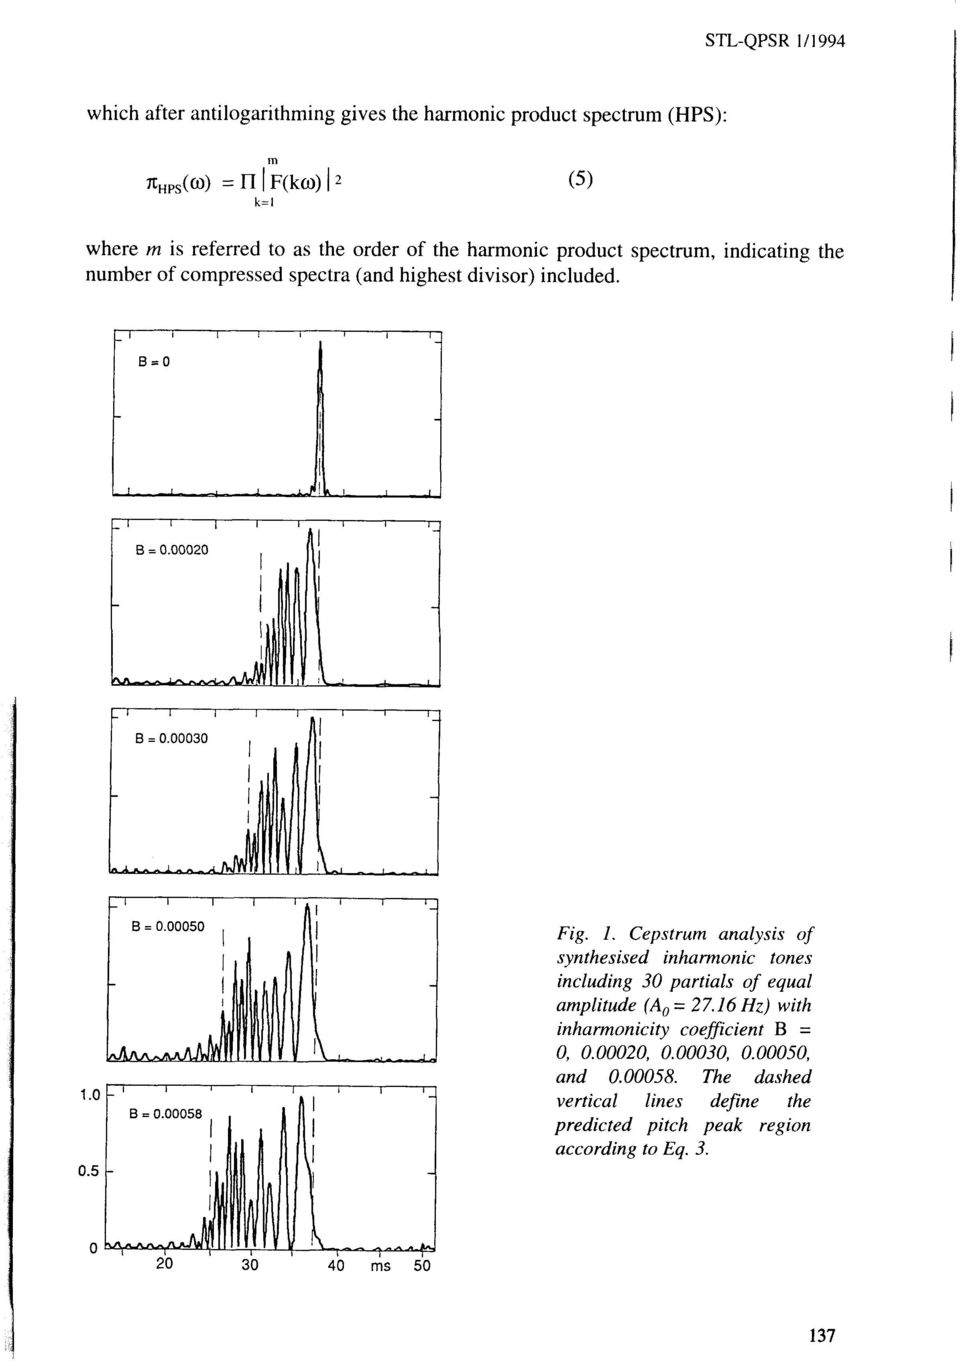 Cepstrum analysis of synthesised inharmonic tones including 30 partials of equal amplitude (Ao = 2 7.